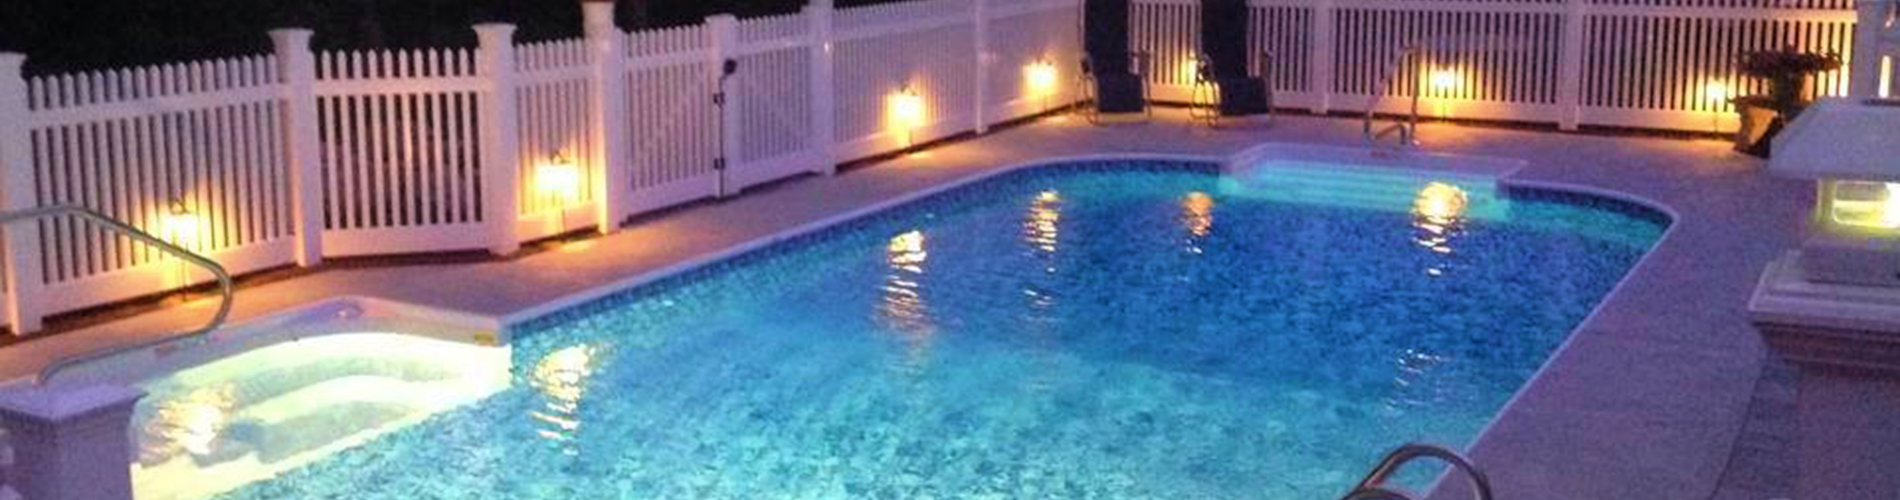 Inground Pool Installations And Above Ground Pools In Nh